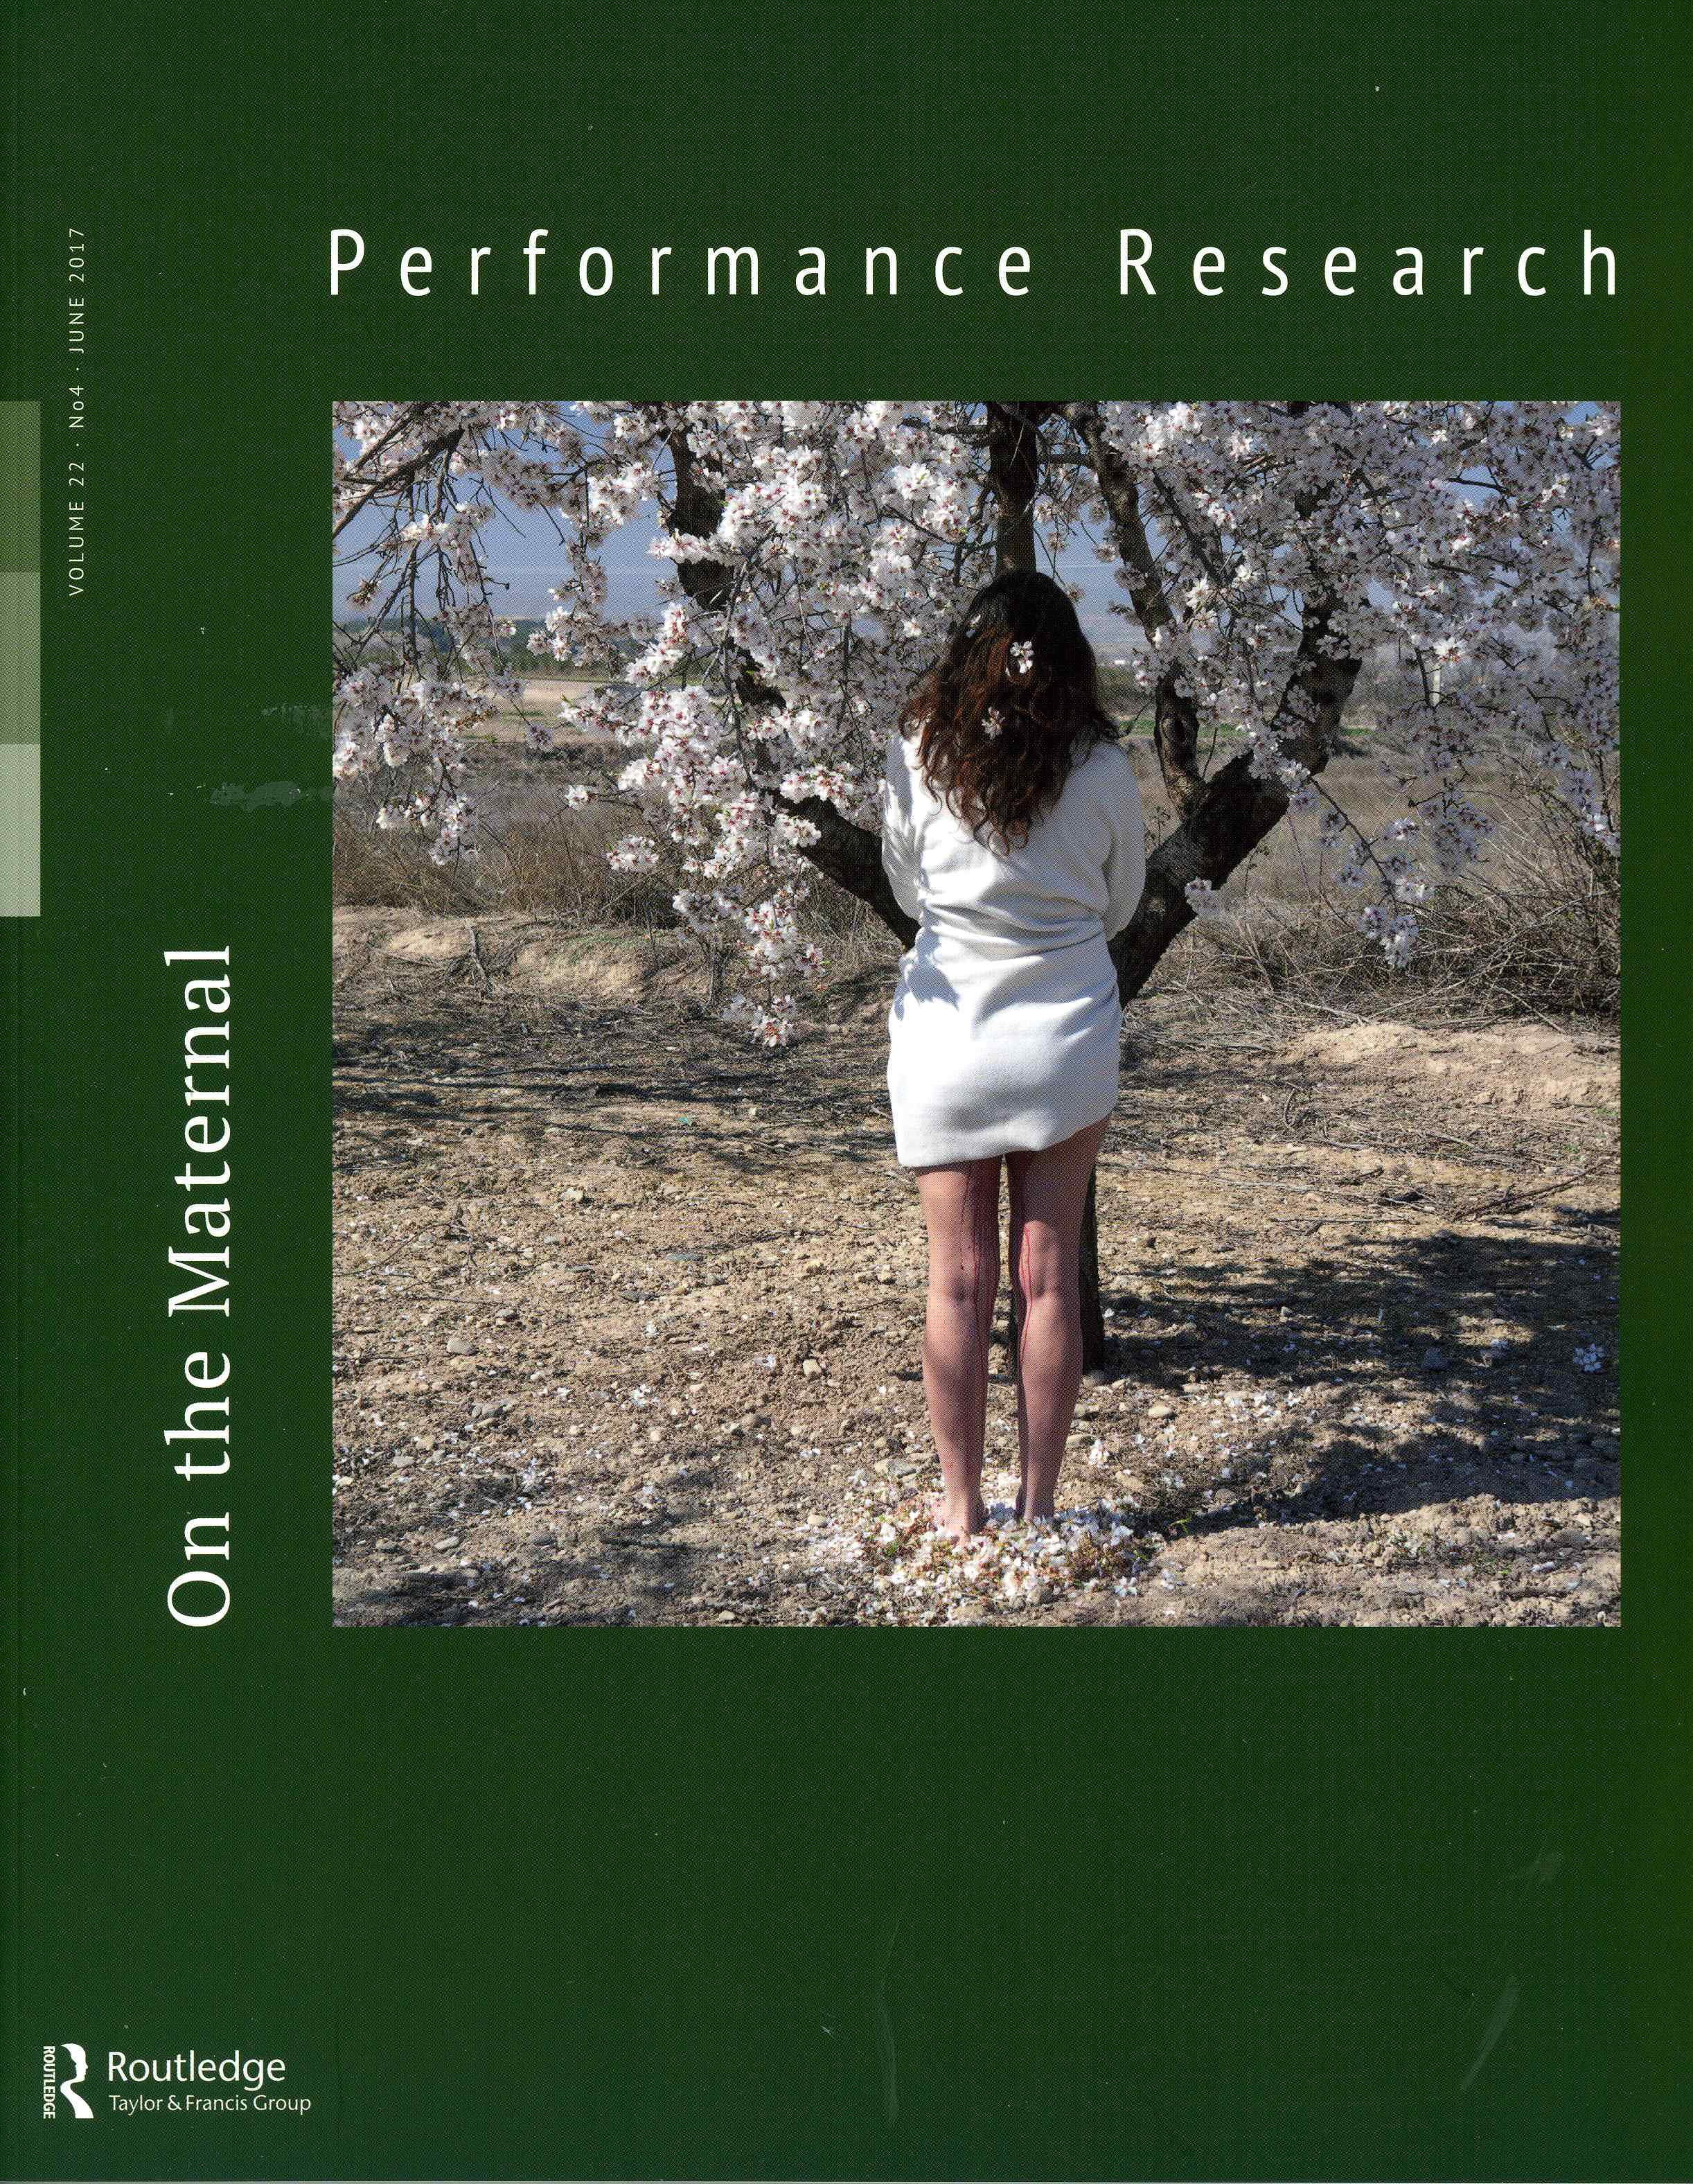 Front cover of the Performance Research journal by Routledge. On the Maternal edition featuring an image of a woman stood under a cherry blossom tree with her back turned wearing a white cardigan and blood dripping down the inside of her legs.